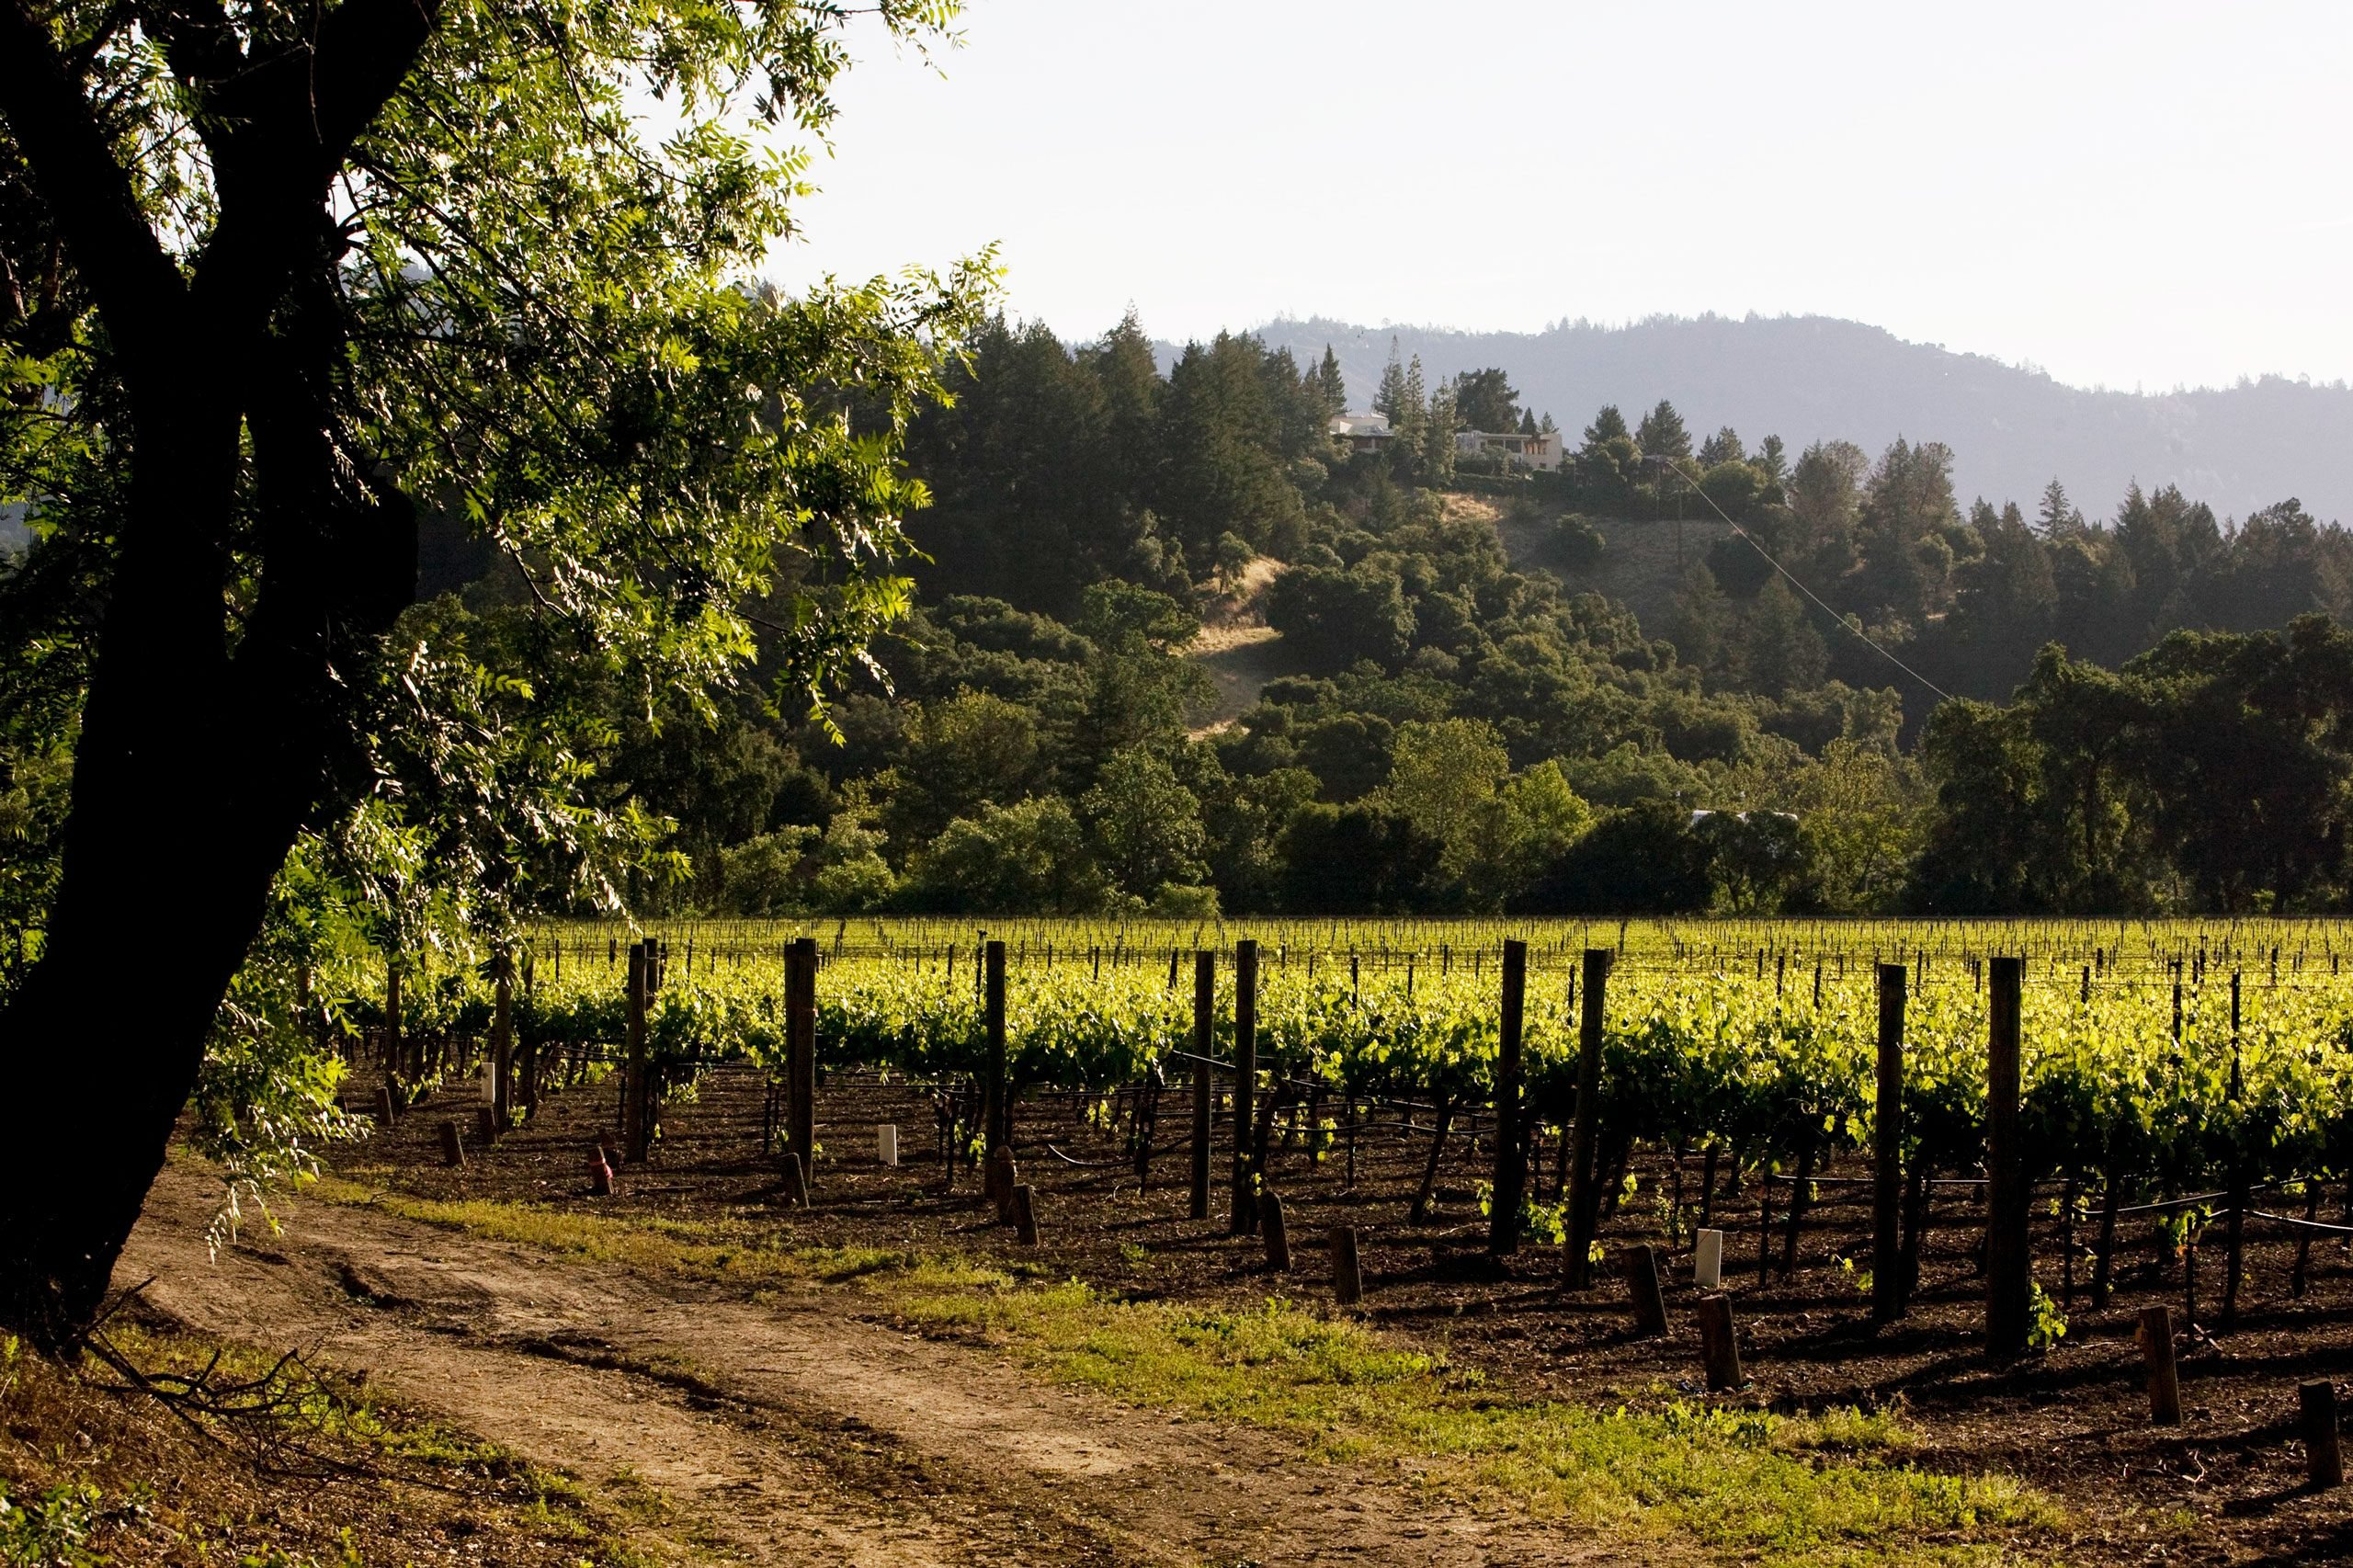 A cabernet sauvignon vineyard owned by Sterling Vineyard & Winery